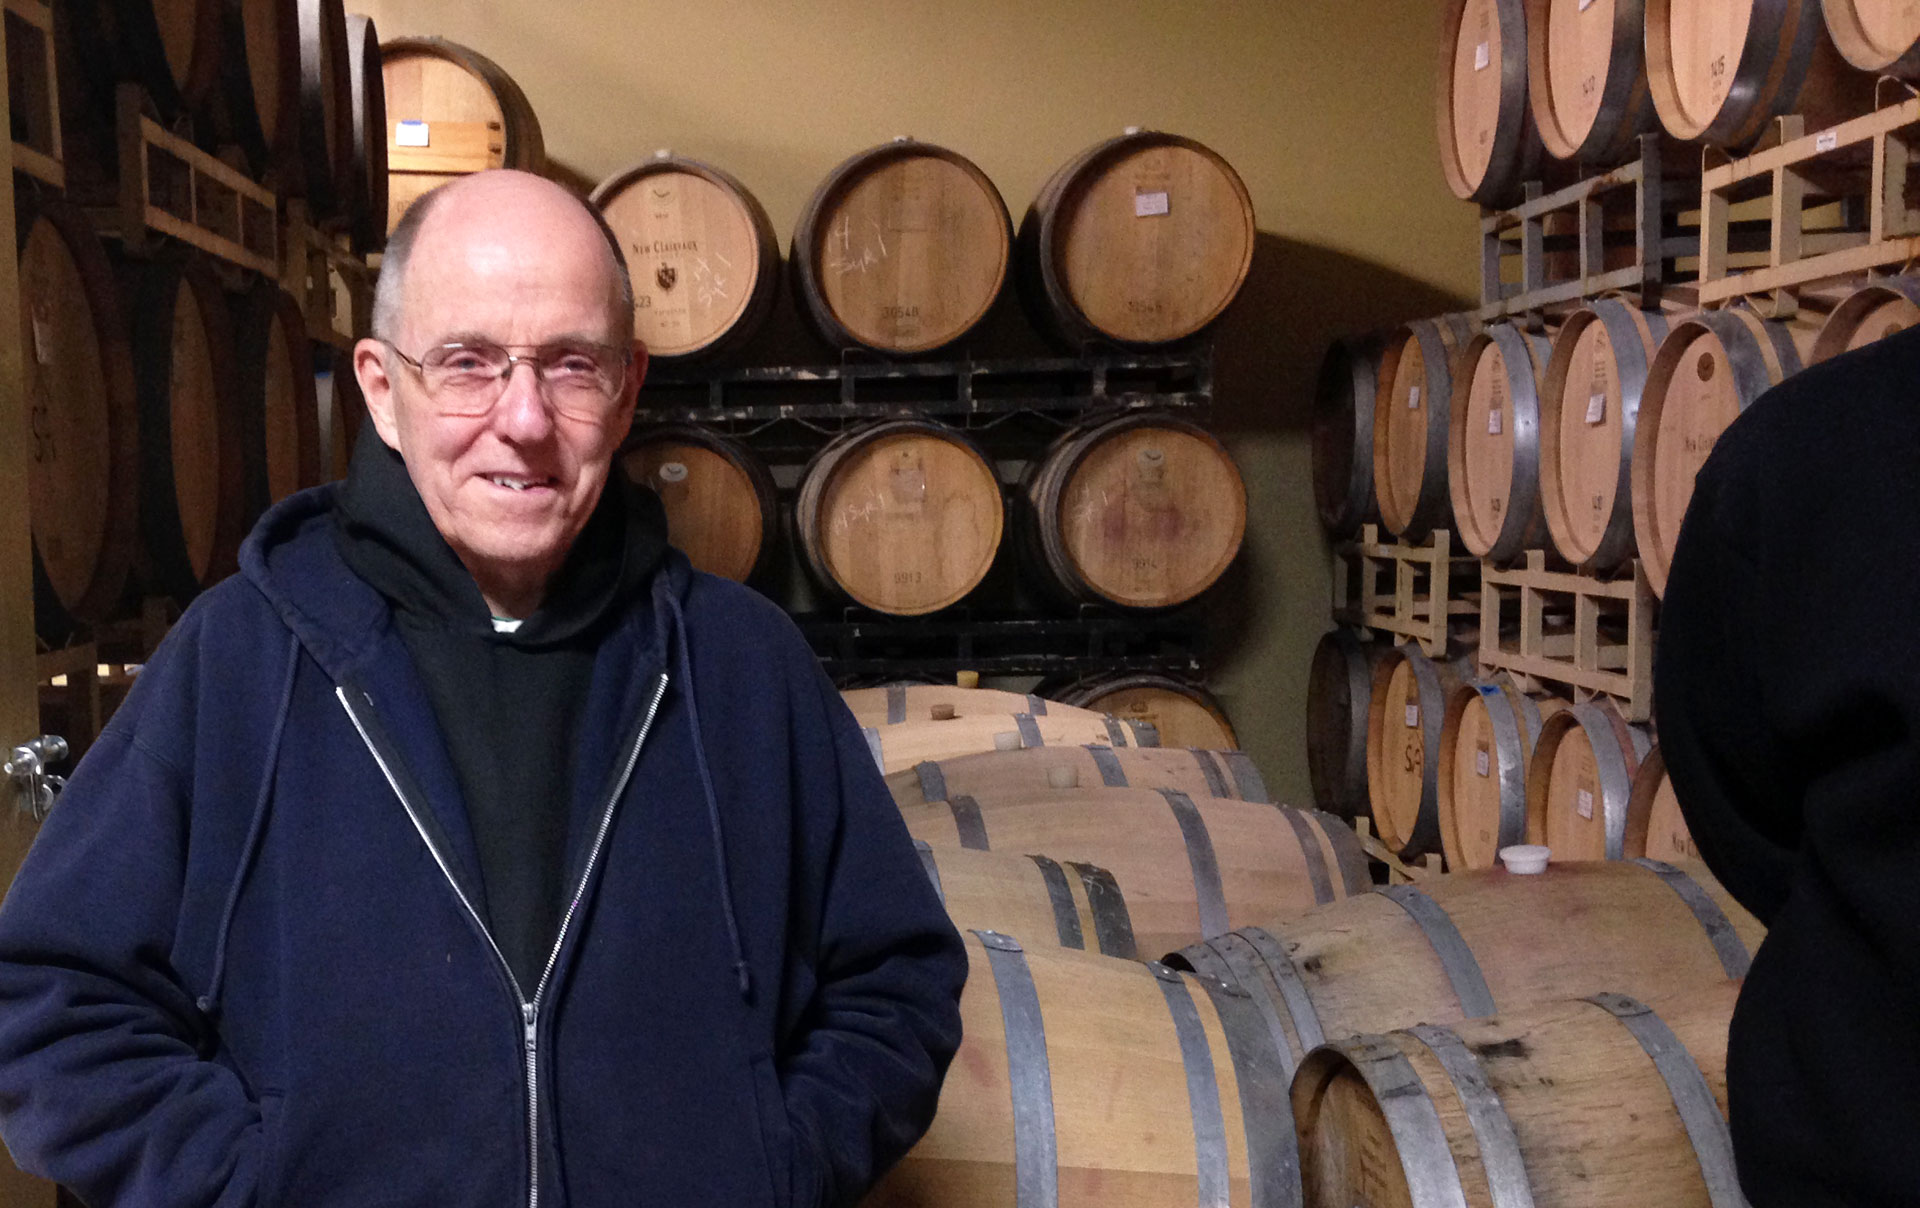 Brother Thomas in the New Clairvaux cellar.